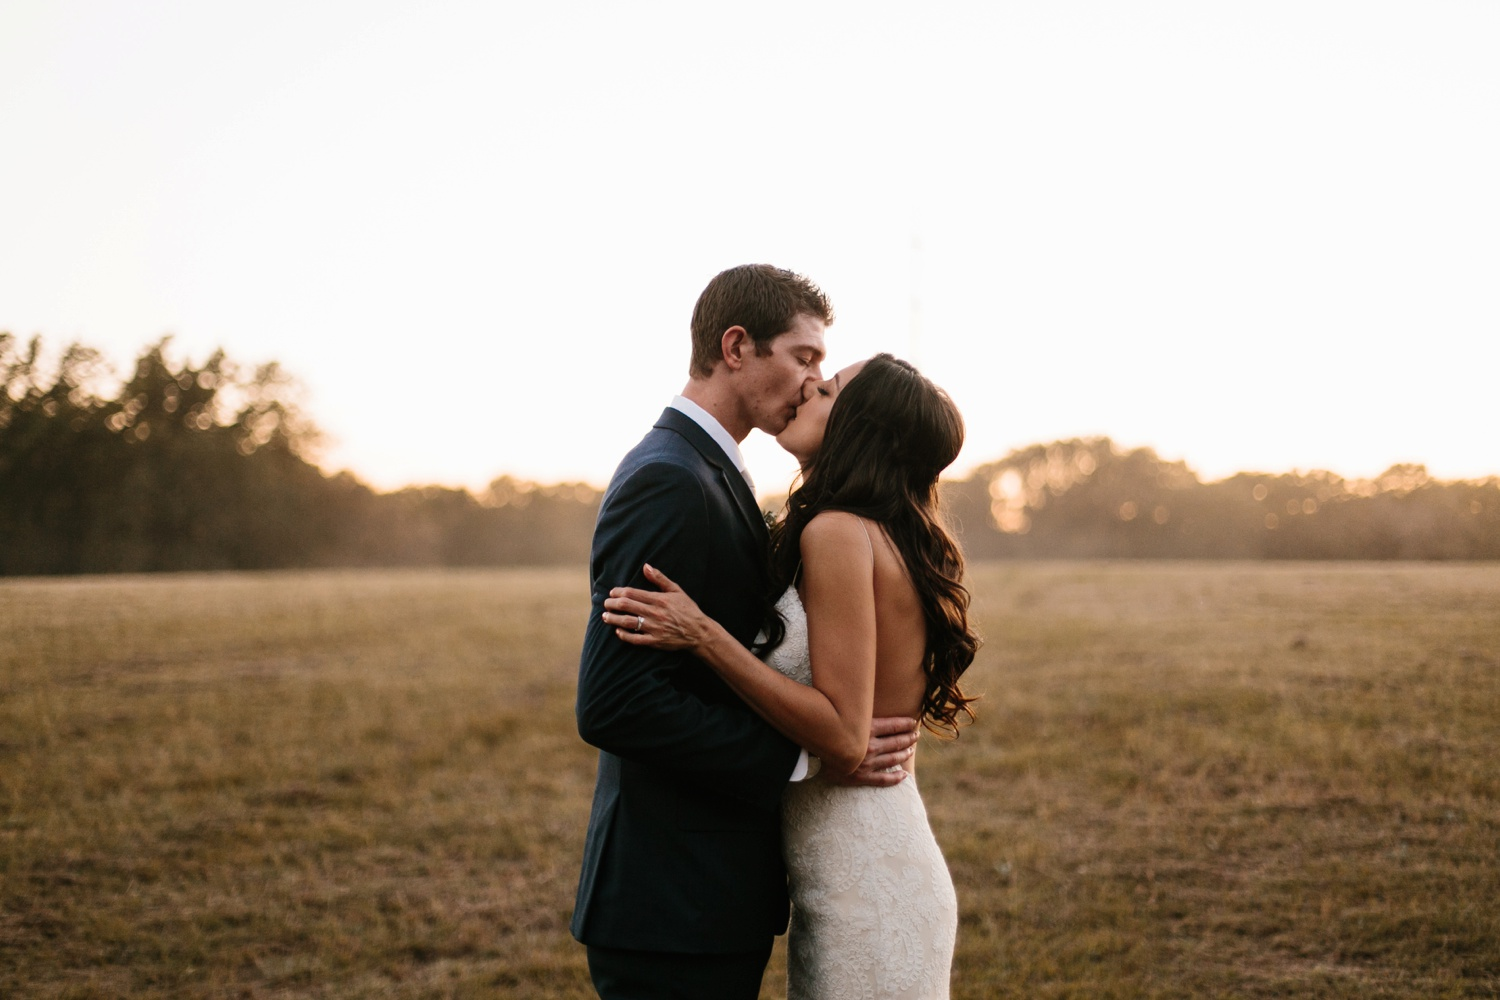 Erica + Henry | a bohemian inspired wedding at Chandlers Gardens in Salina, TX by North Texas Wedding Photographer Rachel Meagan Photography 124